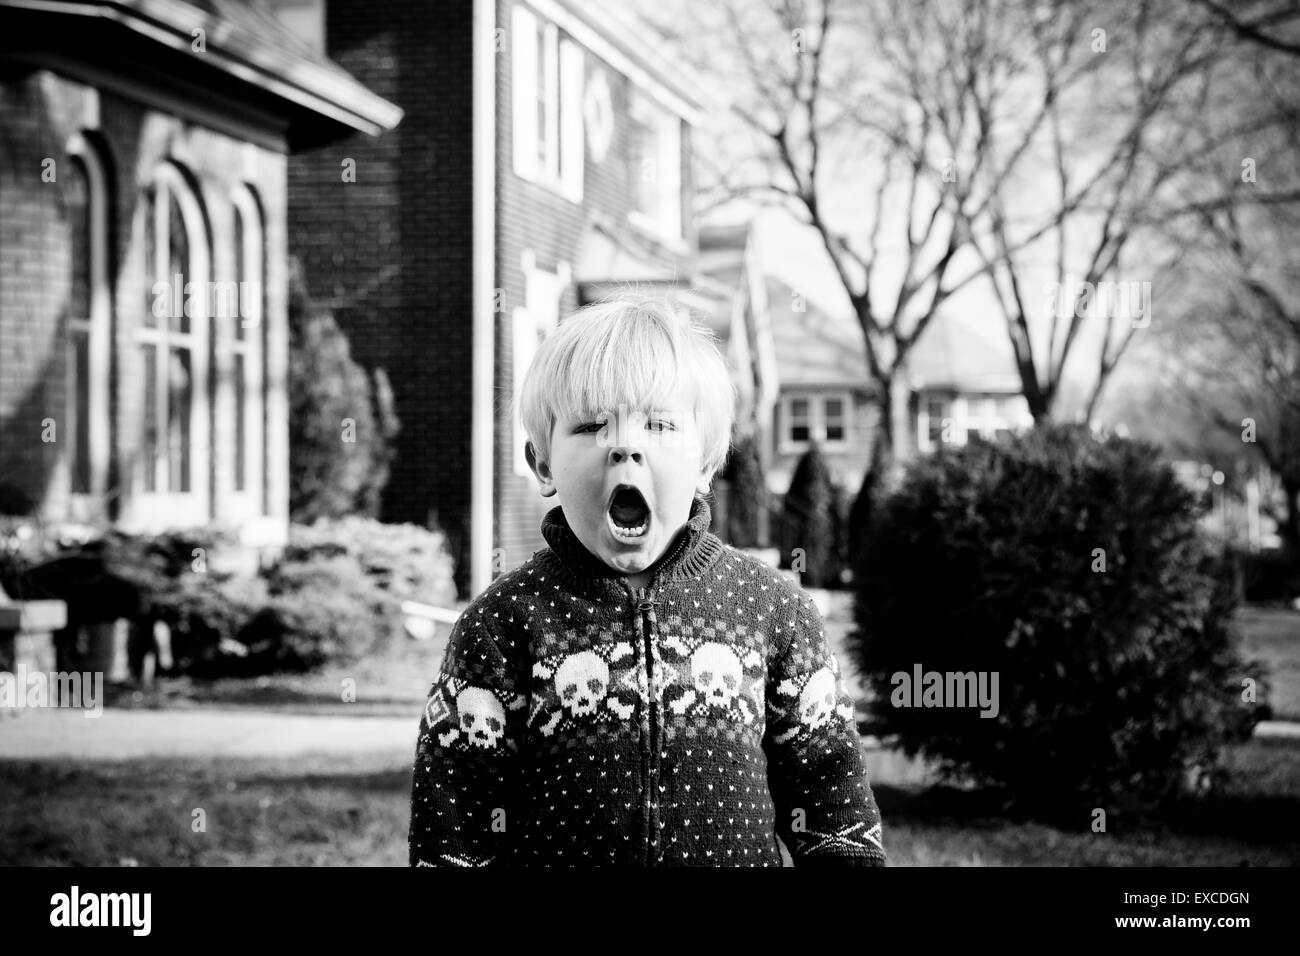 A crabby young blond boy wearing a sweater with skulls stands in the front yard of a house in a neighborhood. Stock Photo